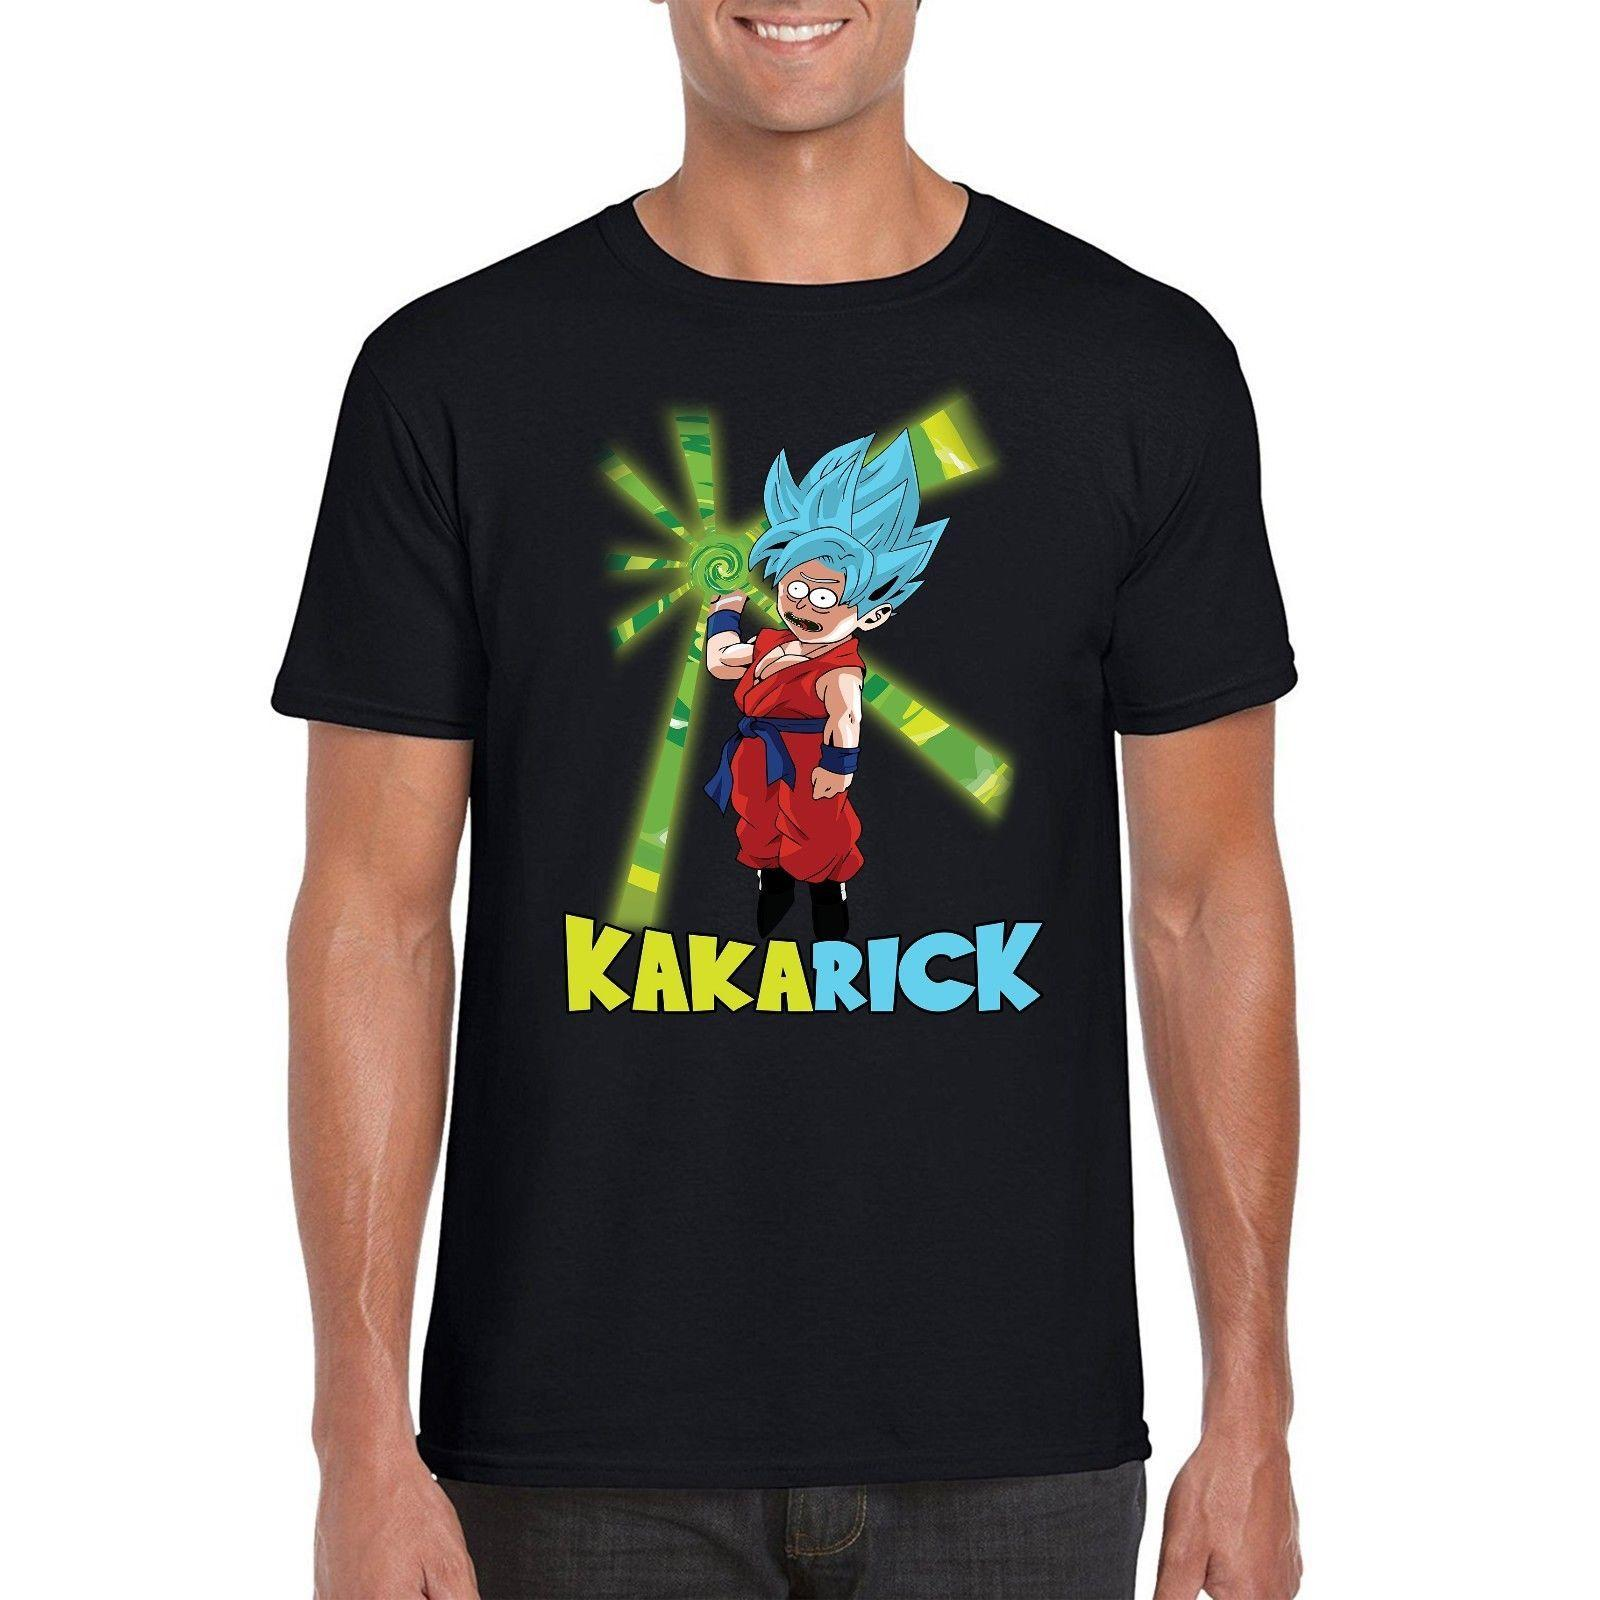 d2d814bc Rick And Morty T Shirt, Dragon Ball Z Super Saiyan KakaRick Inspired Tee  Top Crazy T Shirt Design Comedy T Shirt From Yubin06, $25.33| DHgate.Com